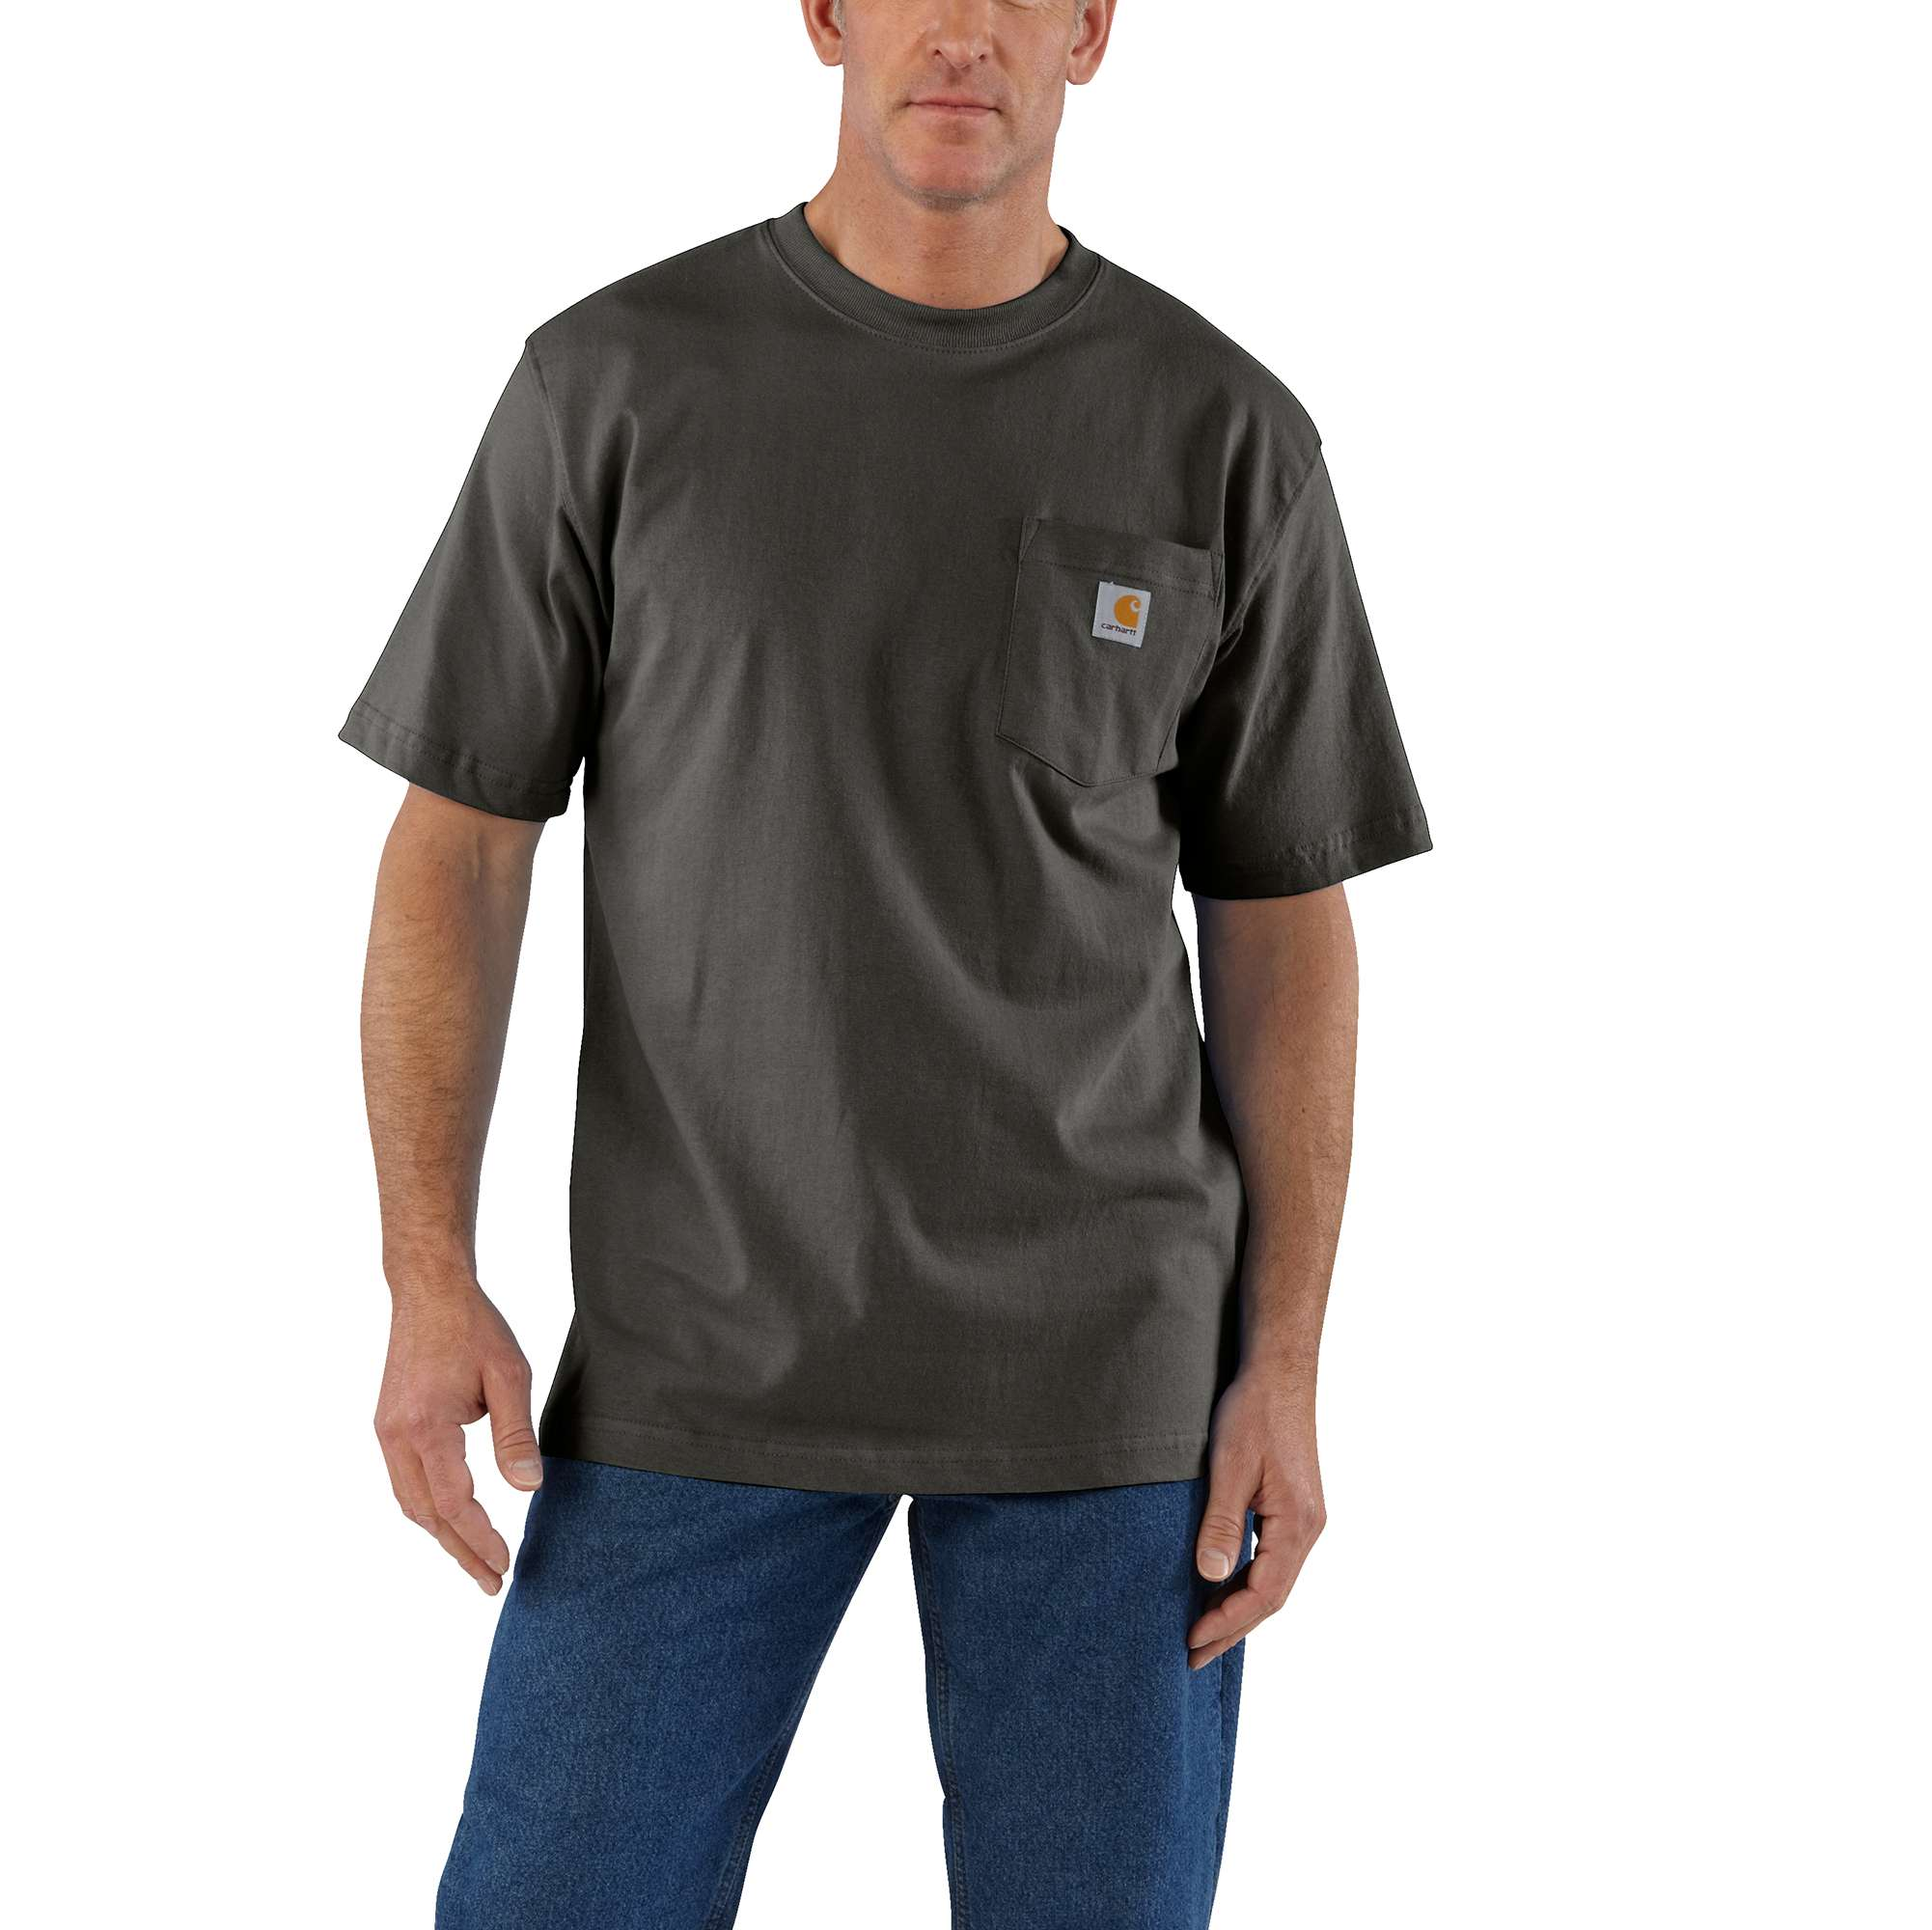 Workwear Pocket T-Shirt Original Fit